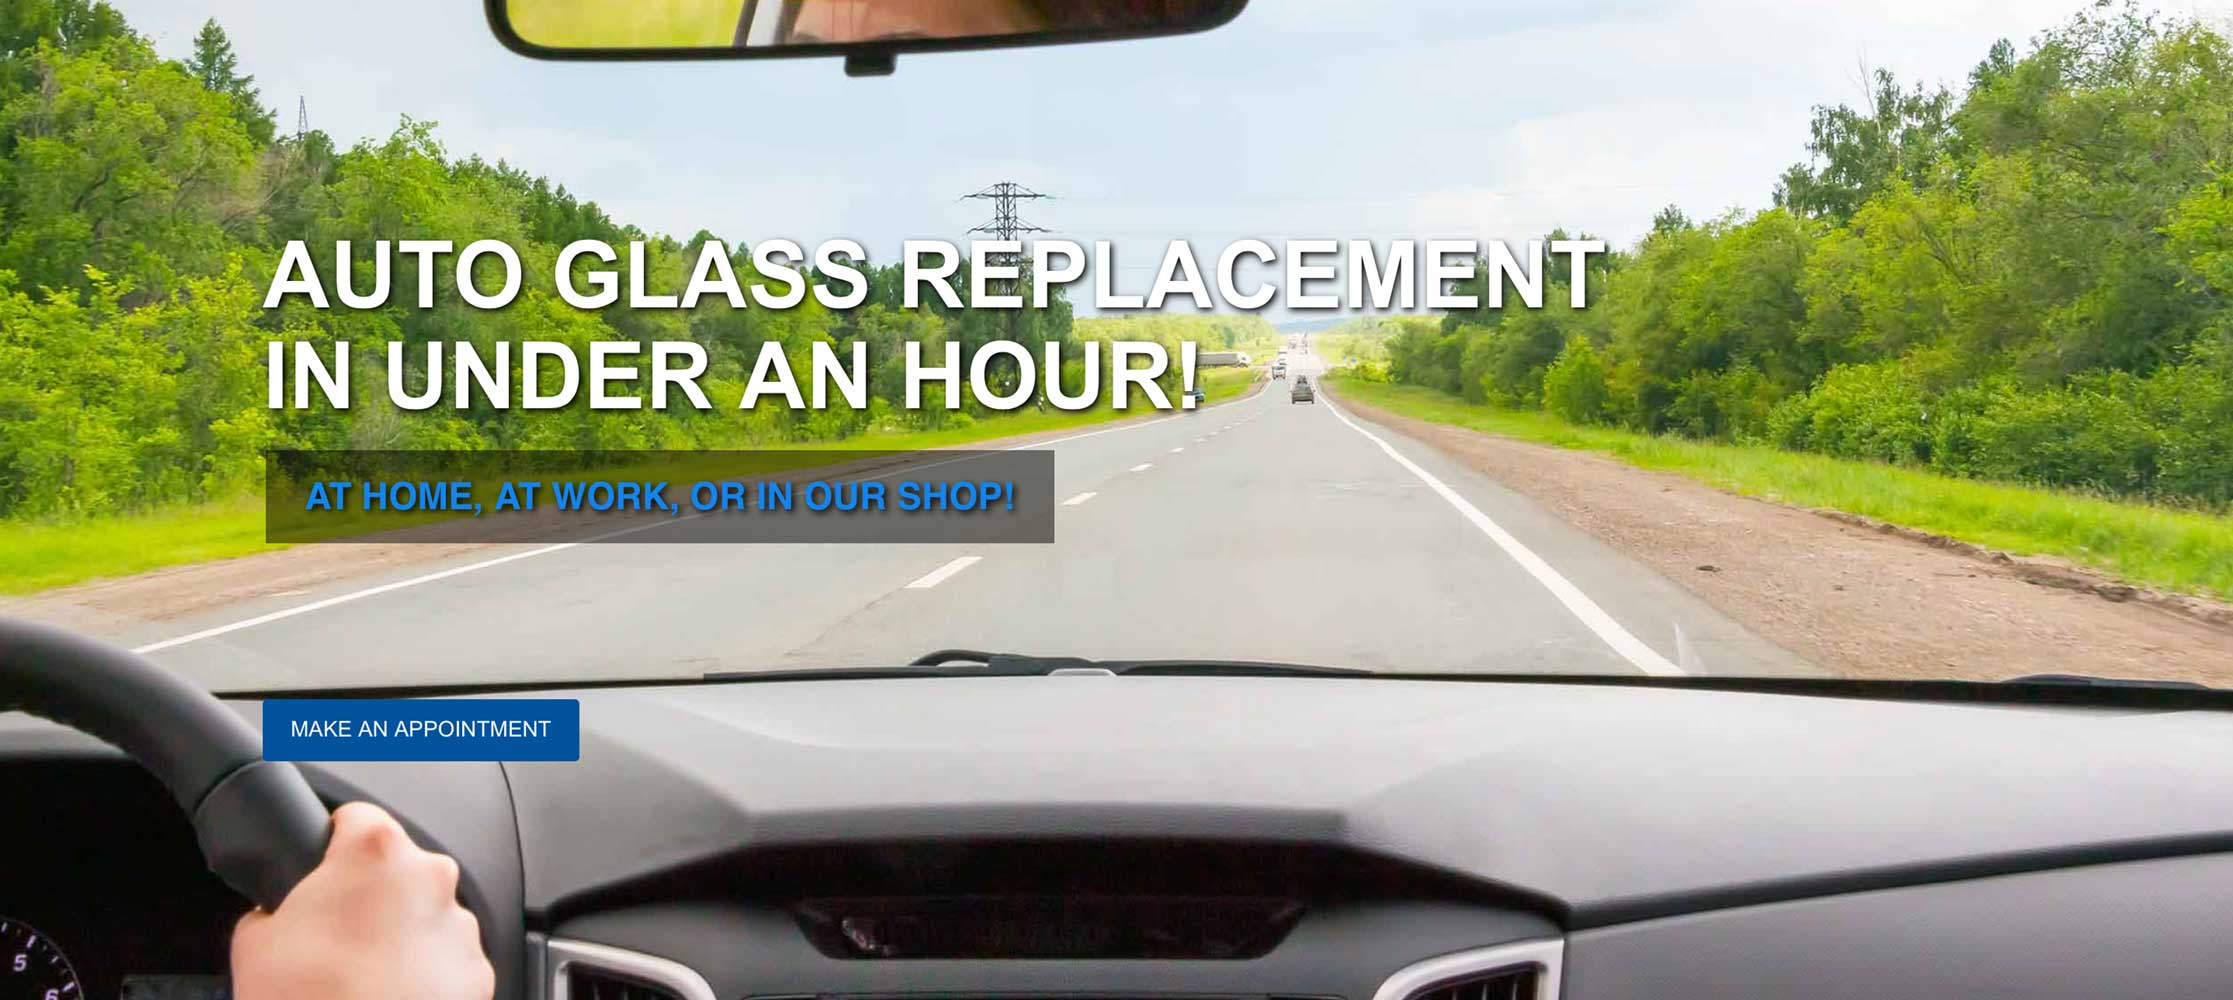 Quickest Auto Glass Replacement, Windshield Replacement